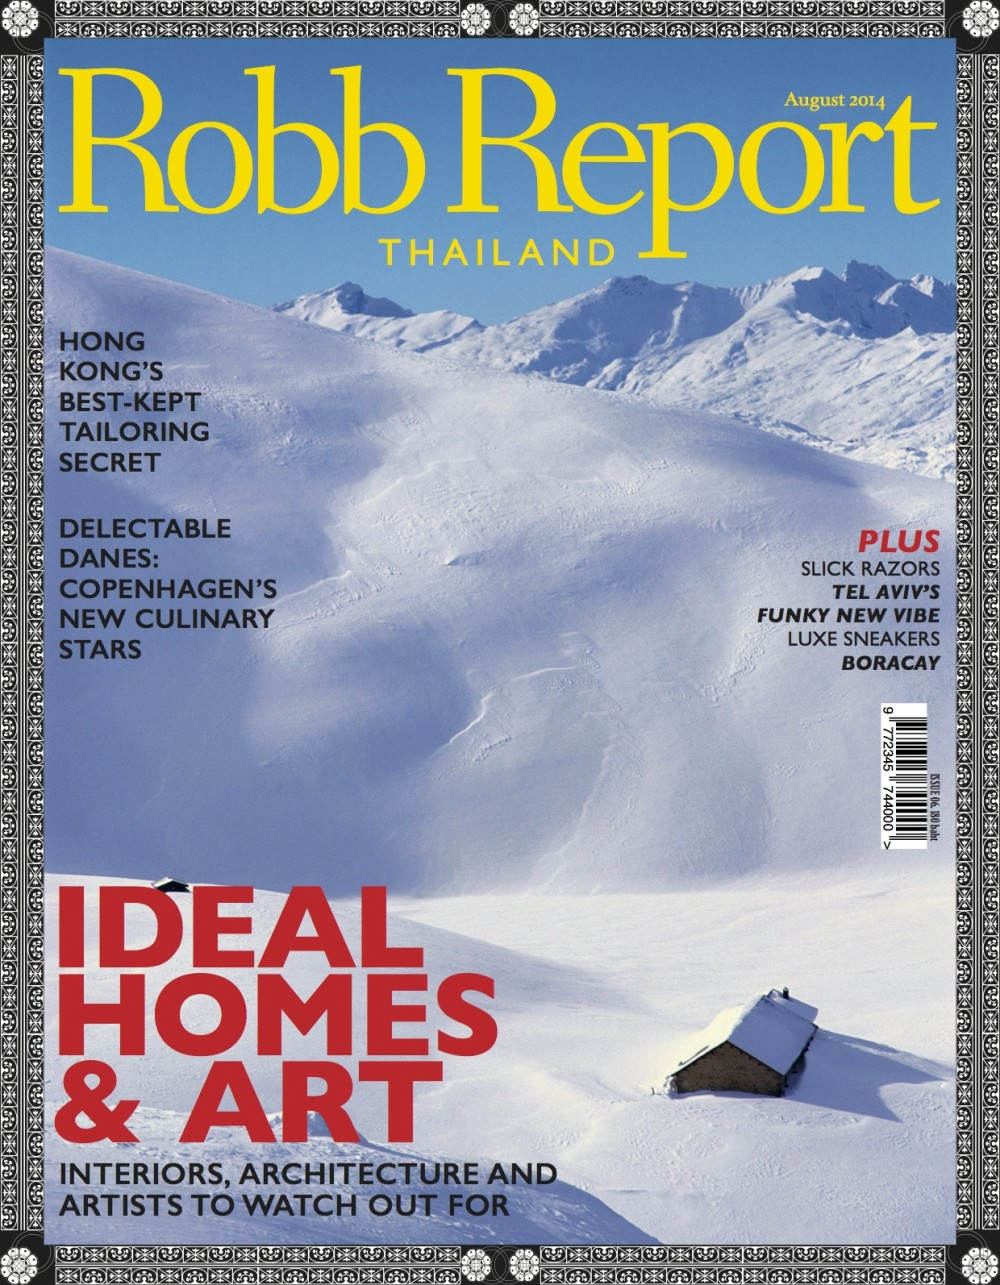 RR_THAI-00-AUG-COVER THAILAND